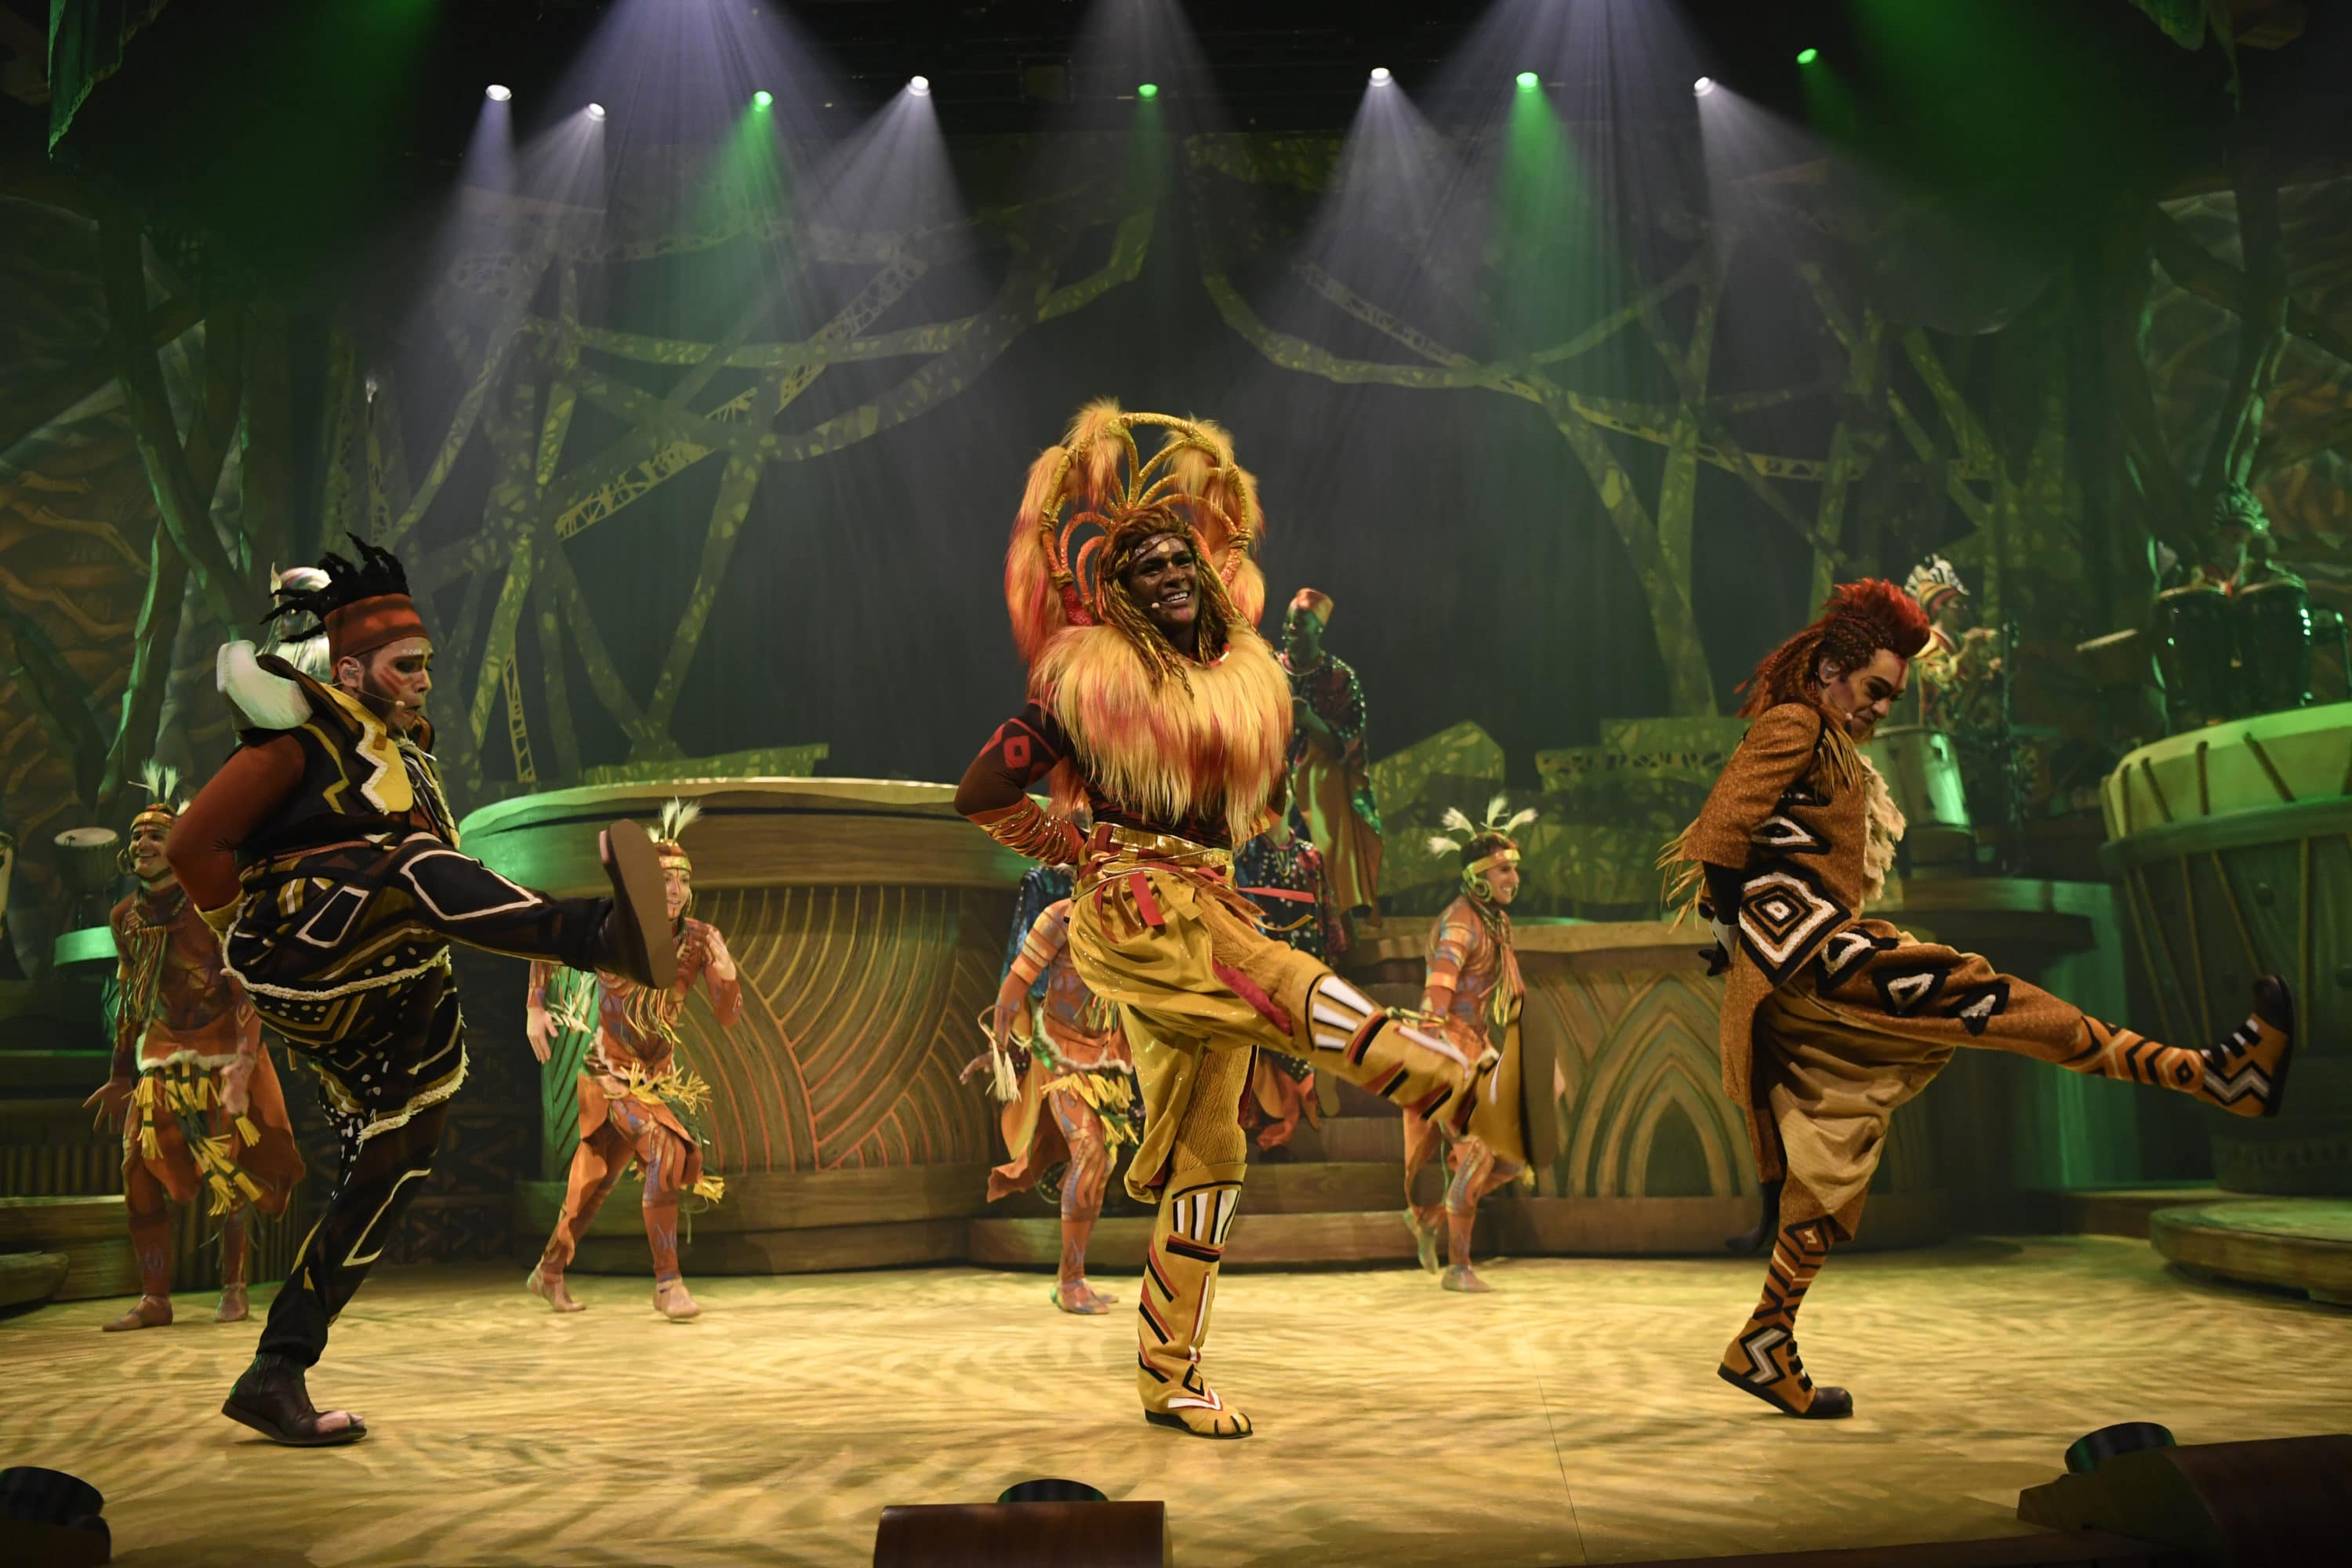 The Lion King and the Rhythms of the Earth